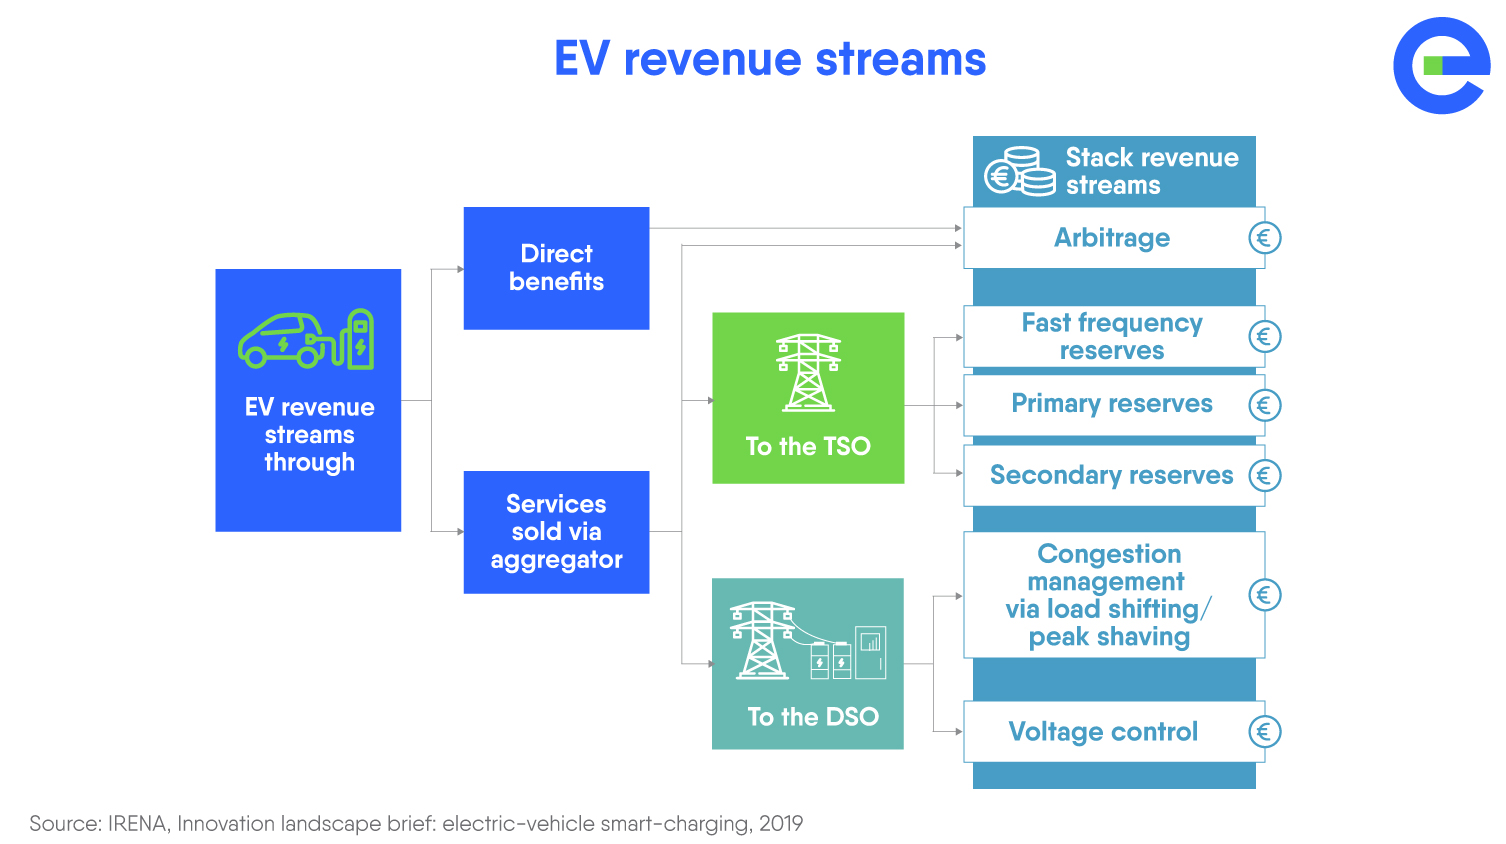 Storage Report 2020 - EV revenue streams